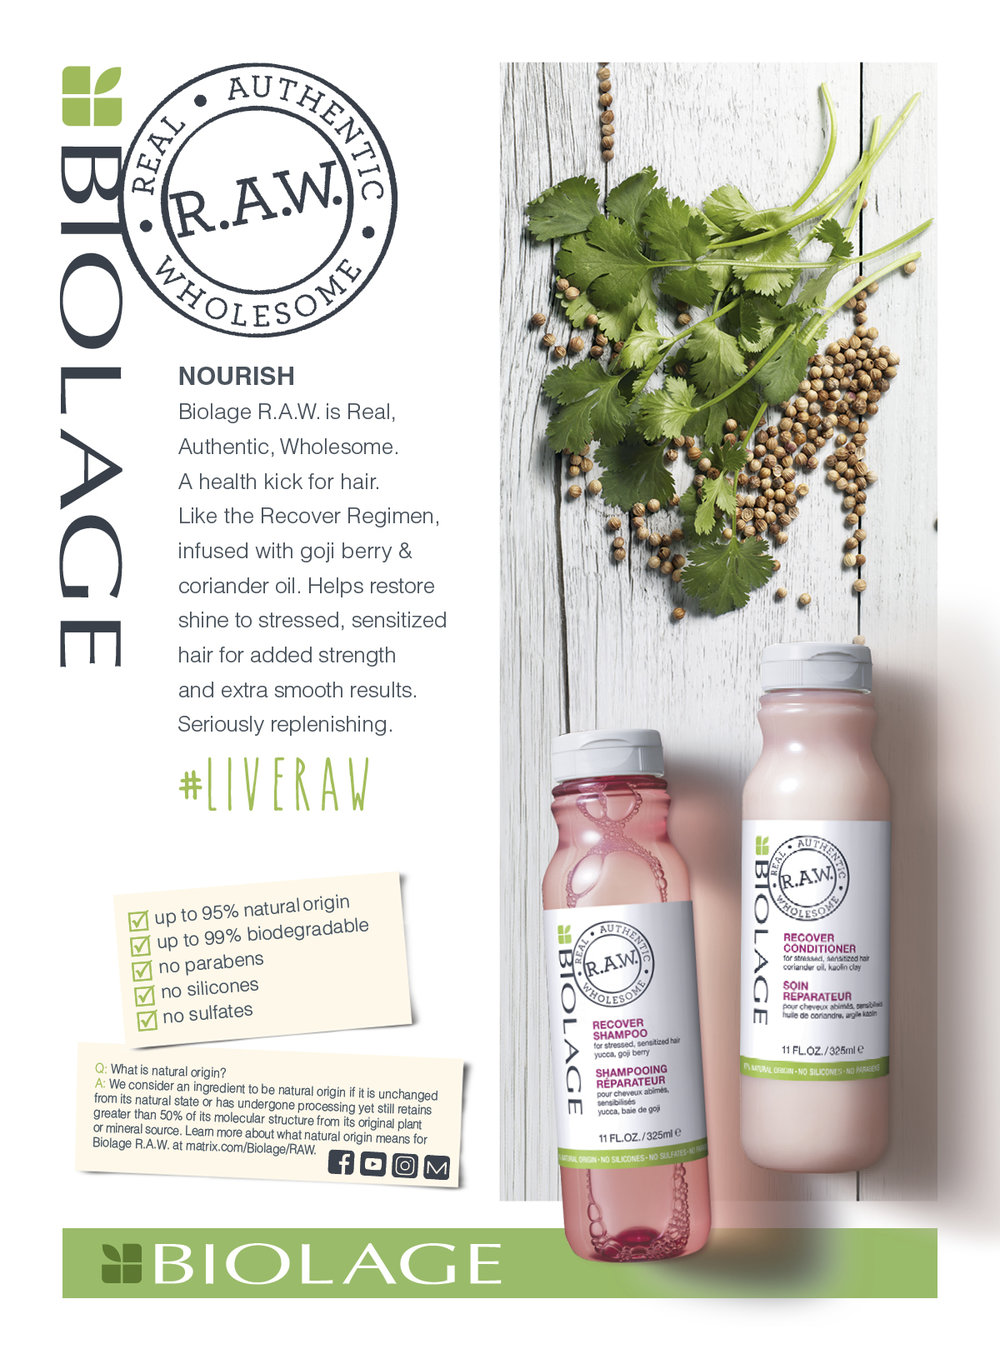 BIOLAGE_RAW_ADVERTISING_SP_EUROPE_032.jpg